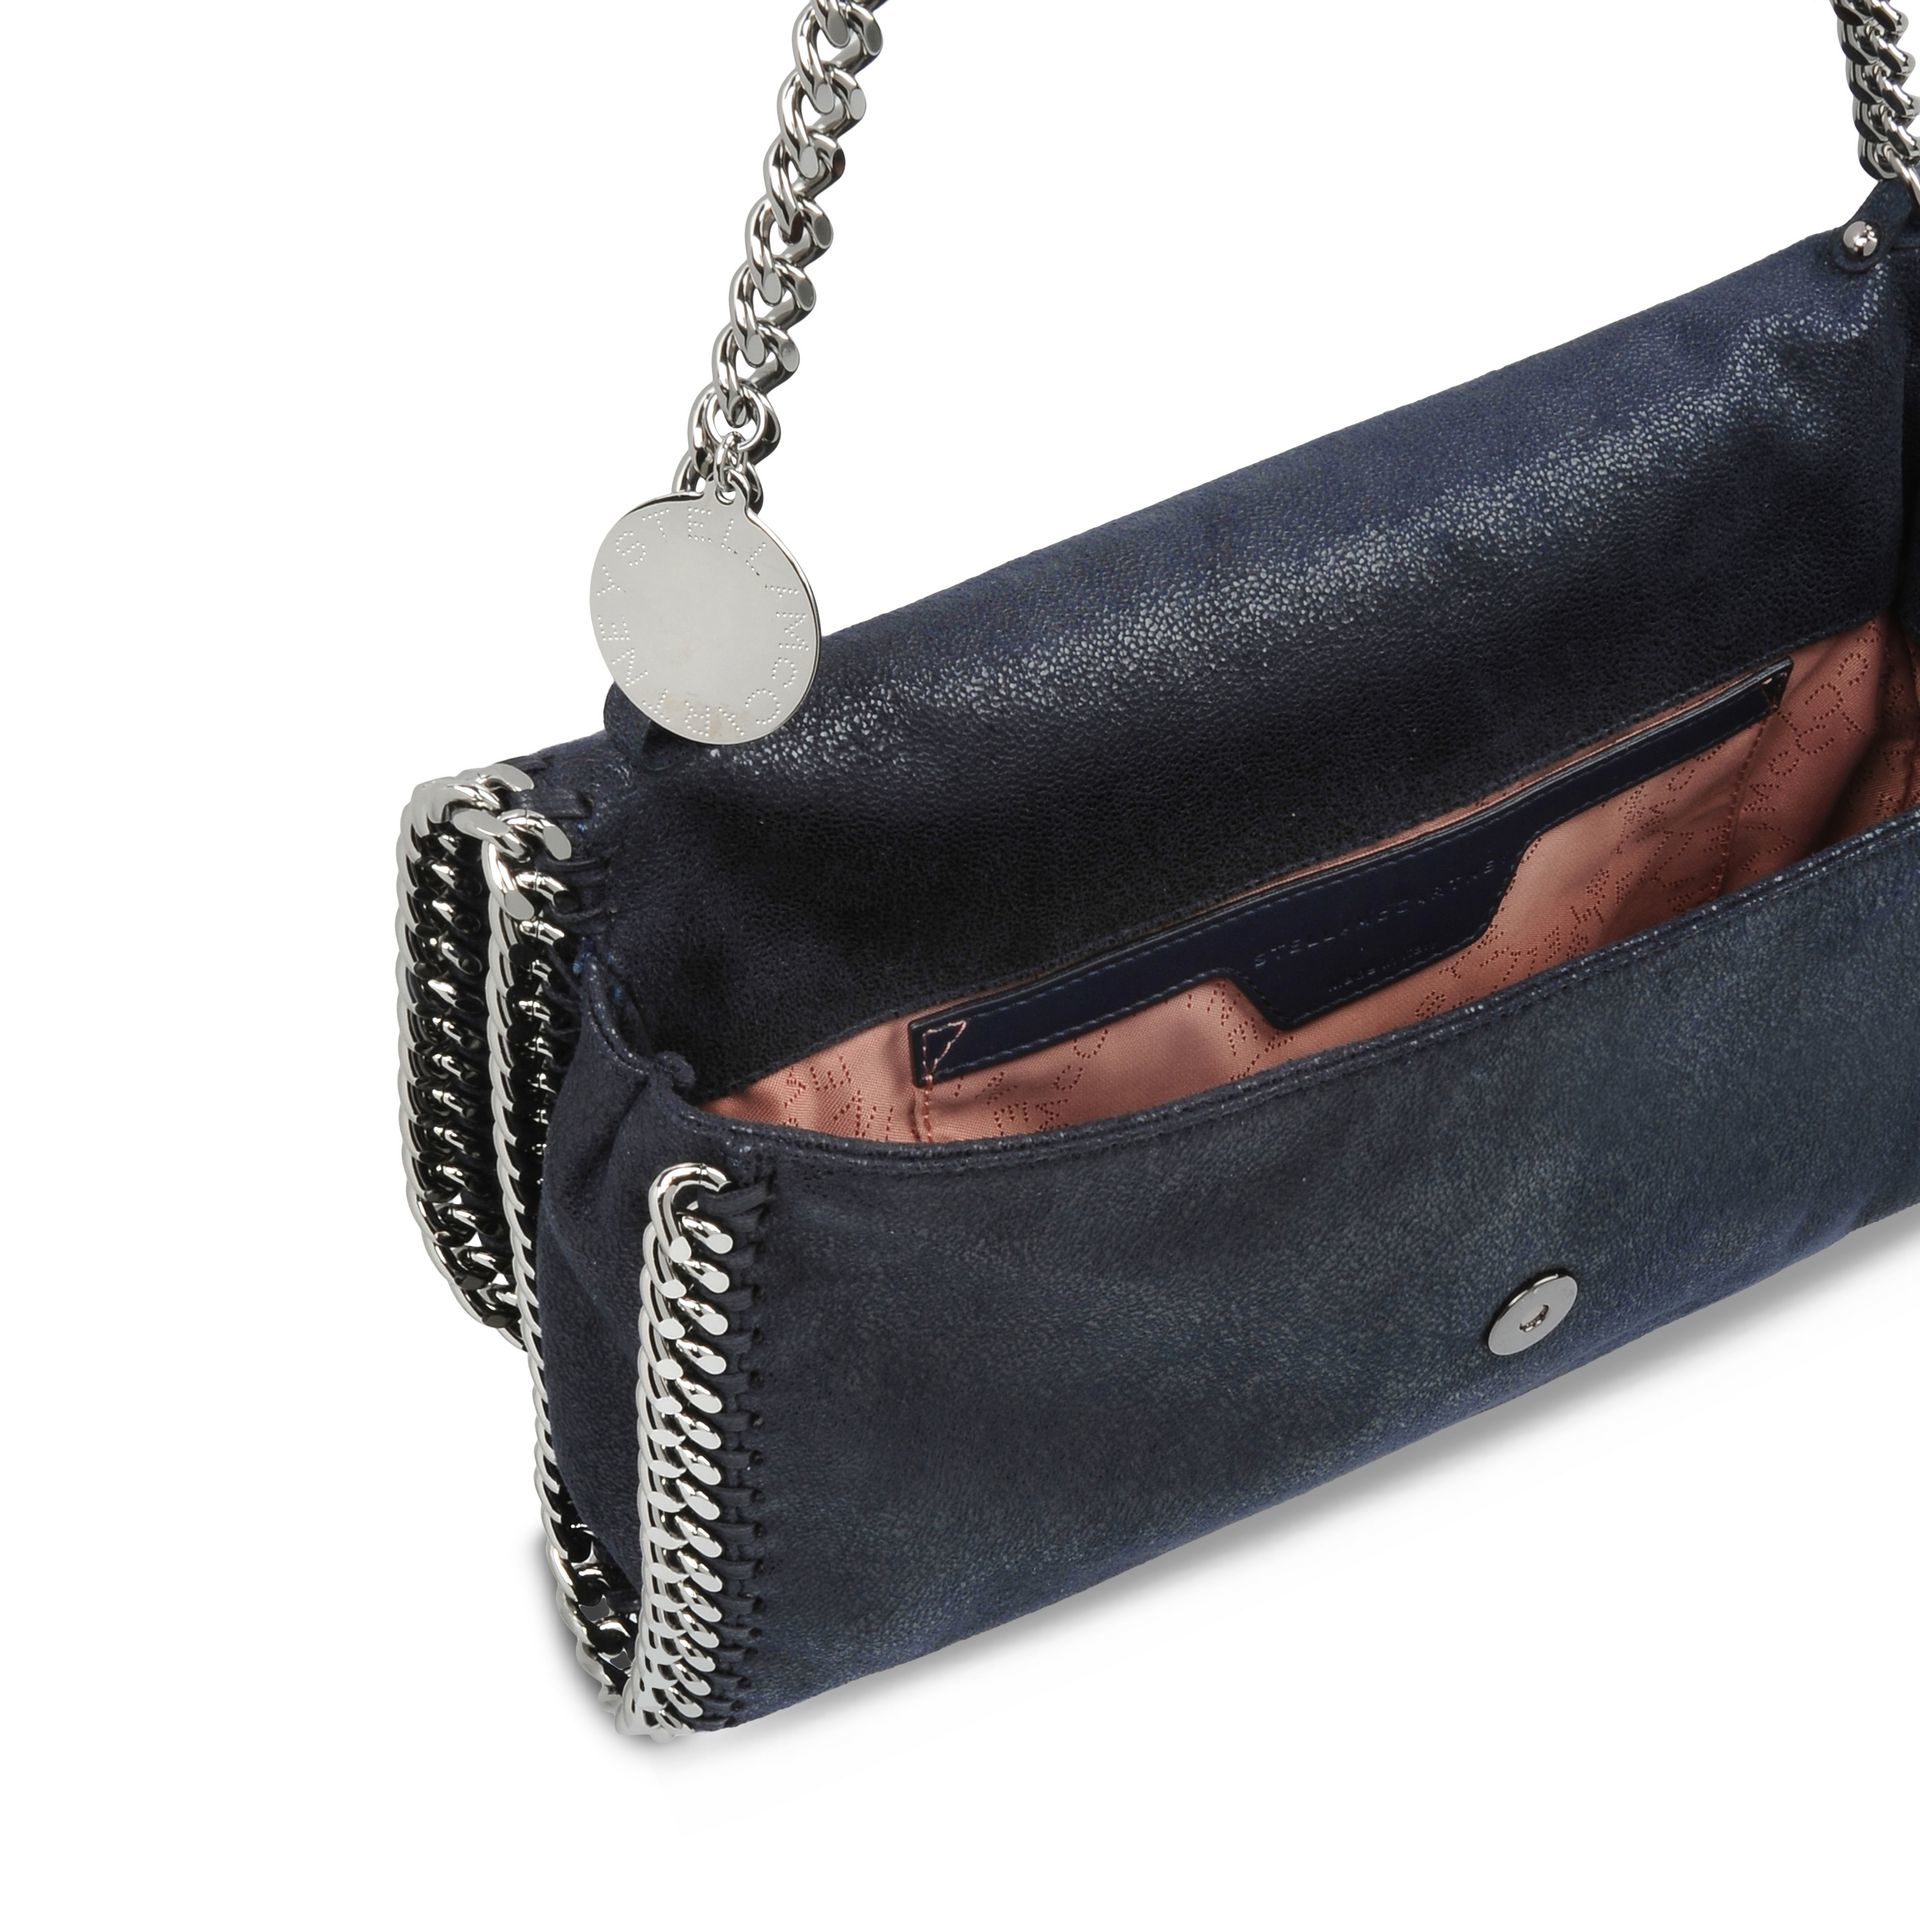 Stella McCartney Navy Falabella Shaggy Deer Shoulder Bag in Blue - Lyst f8738baa8f36c